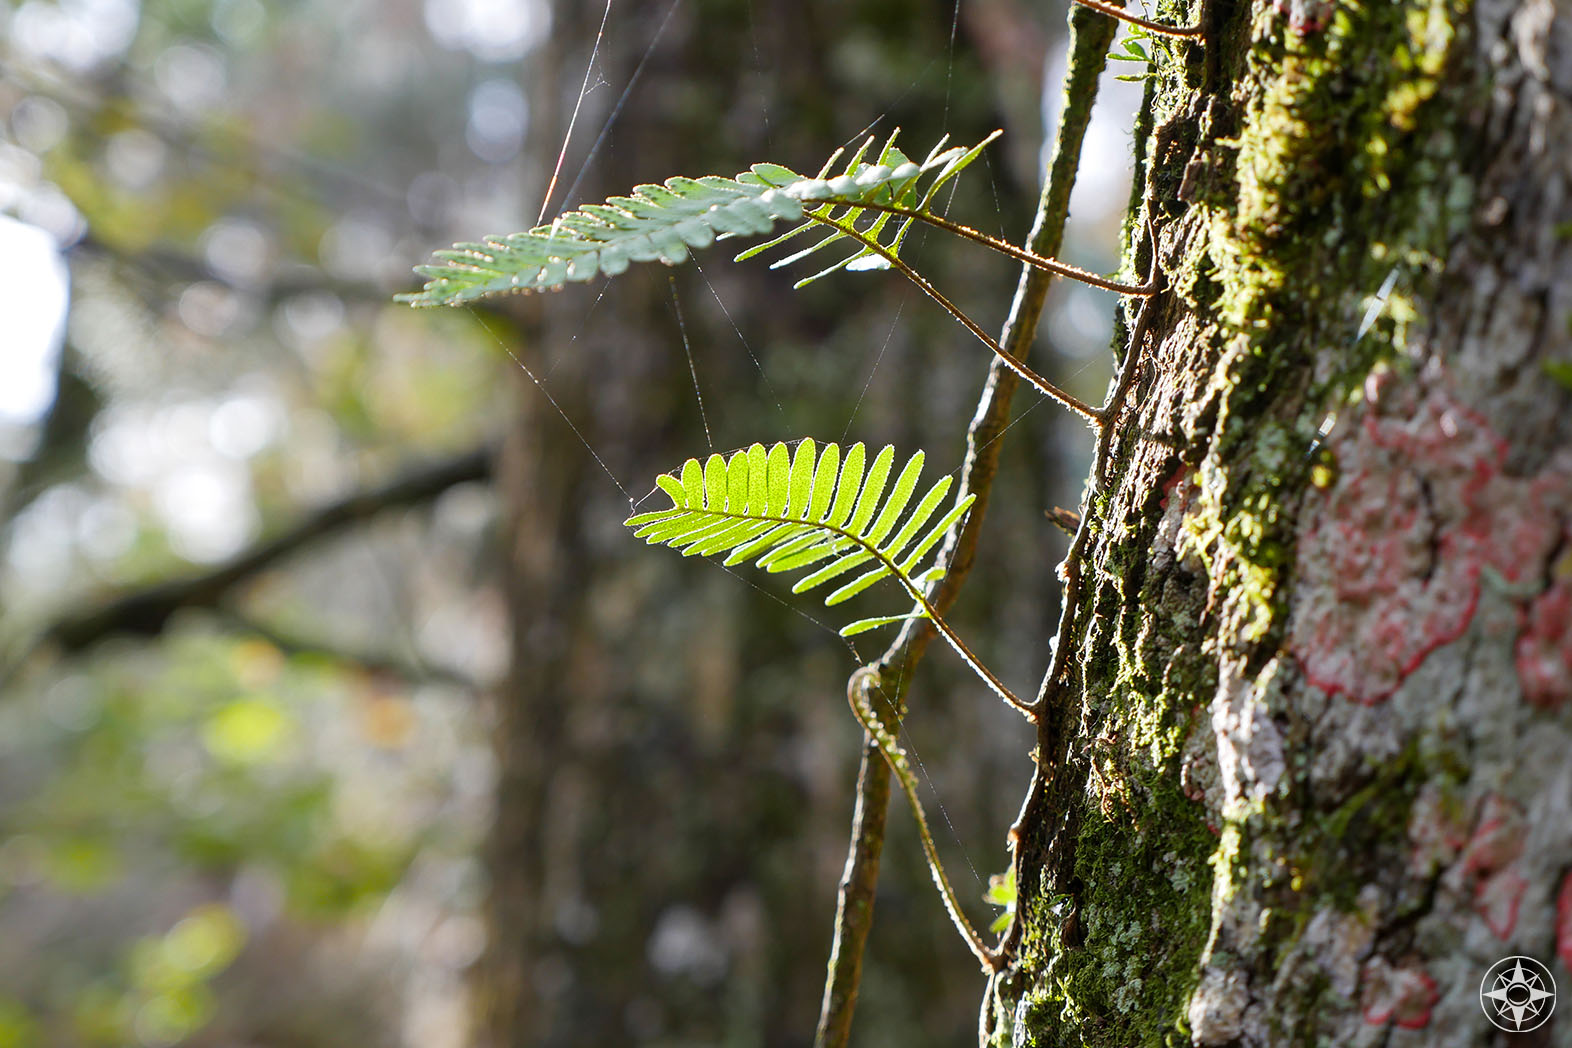 small fern leaves growing on tree, lit by the sun